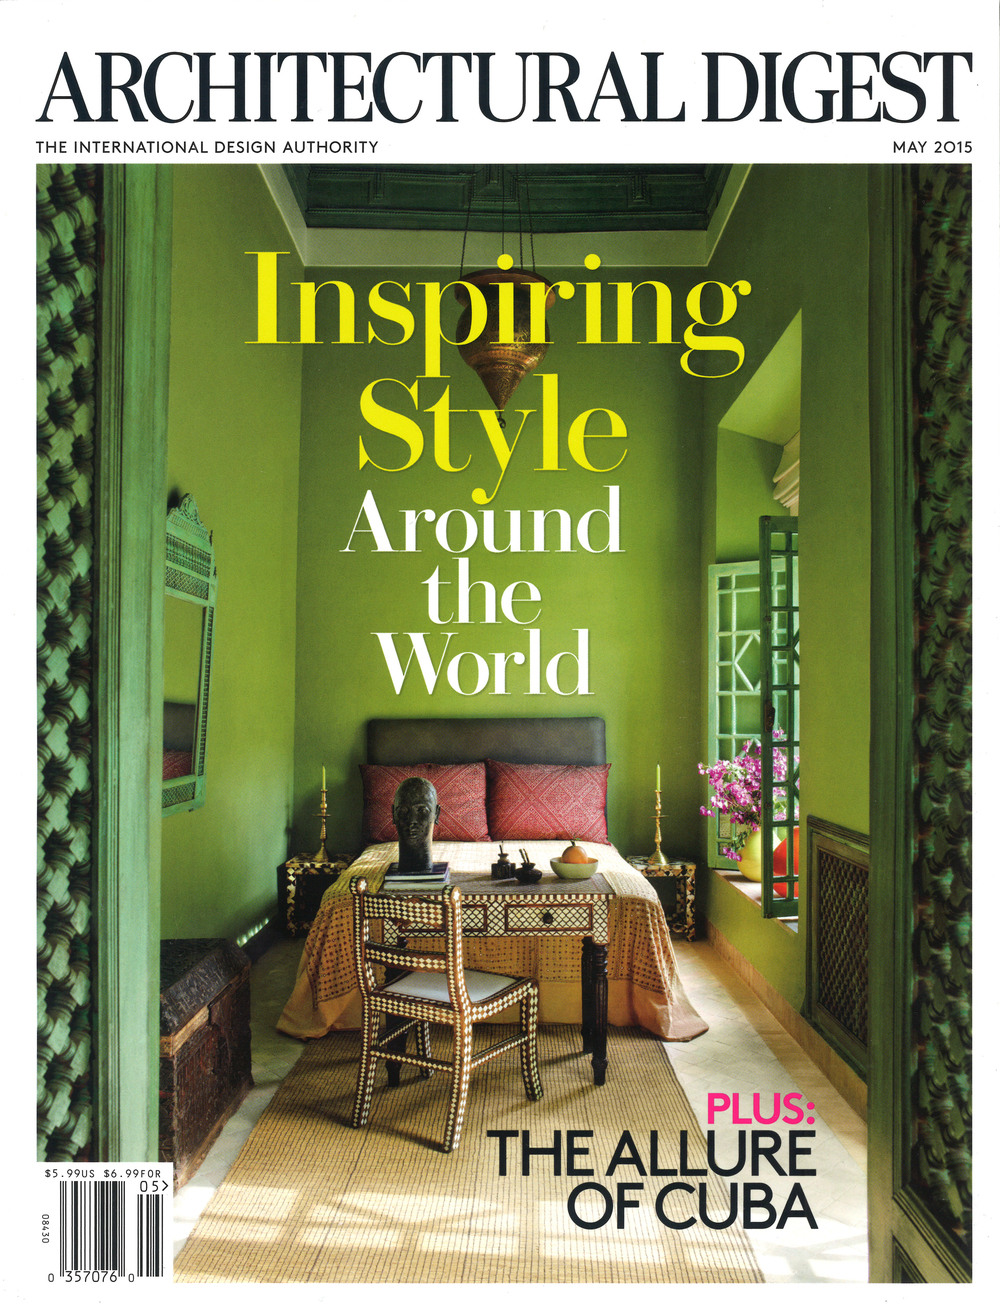 Architectural Digest-May 2015-cover.jpg